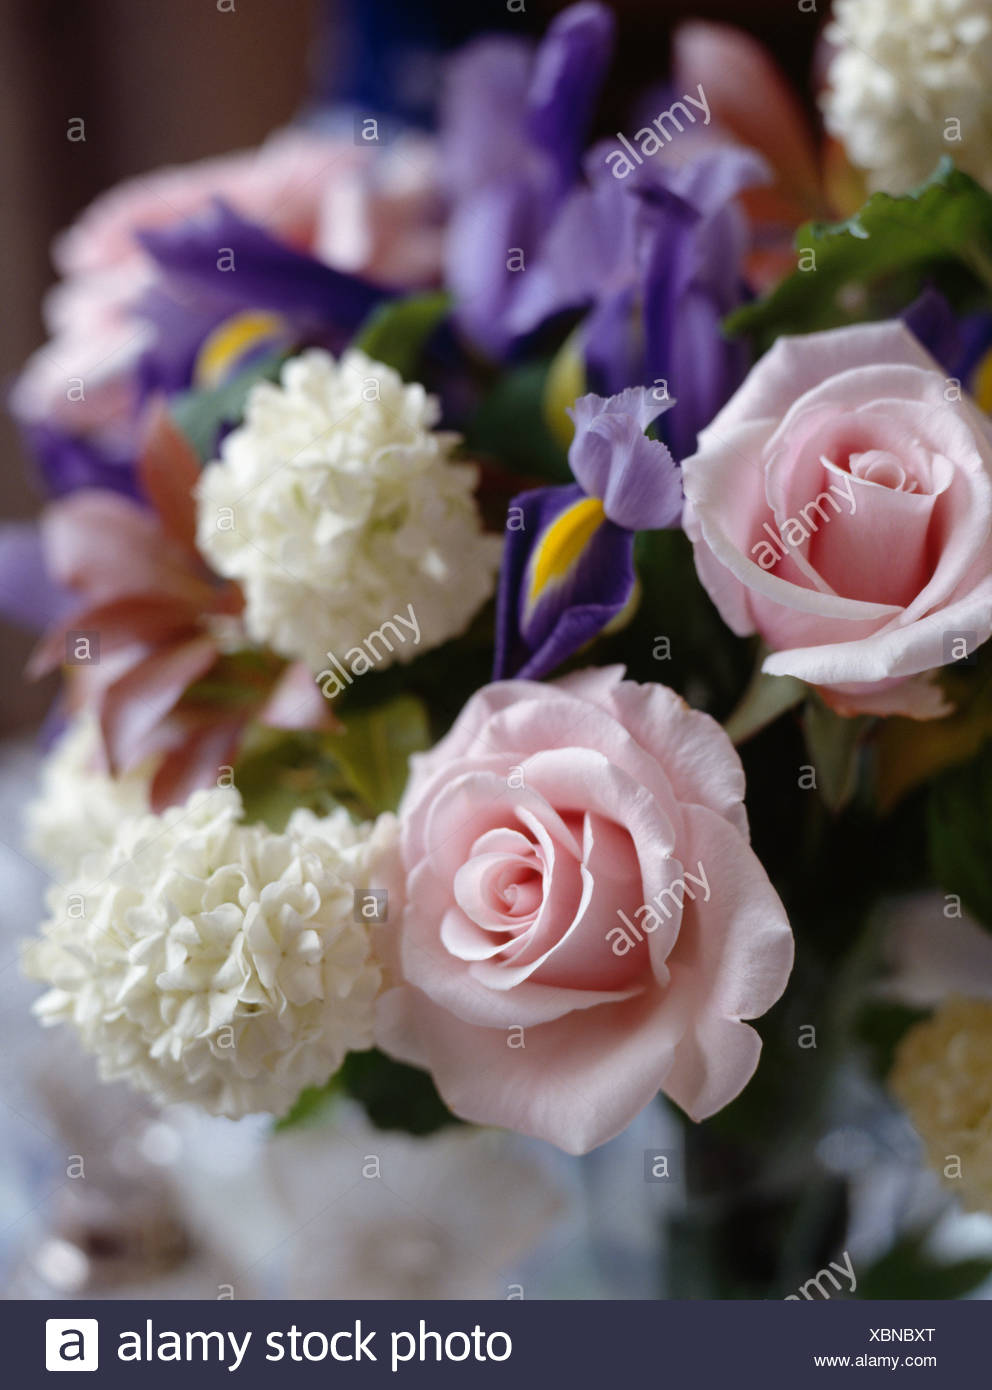 Still Life Of Pink Roses With Blue Irises And White Viburnum Opulus